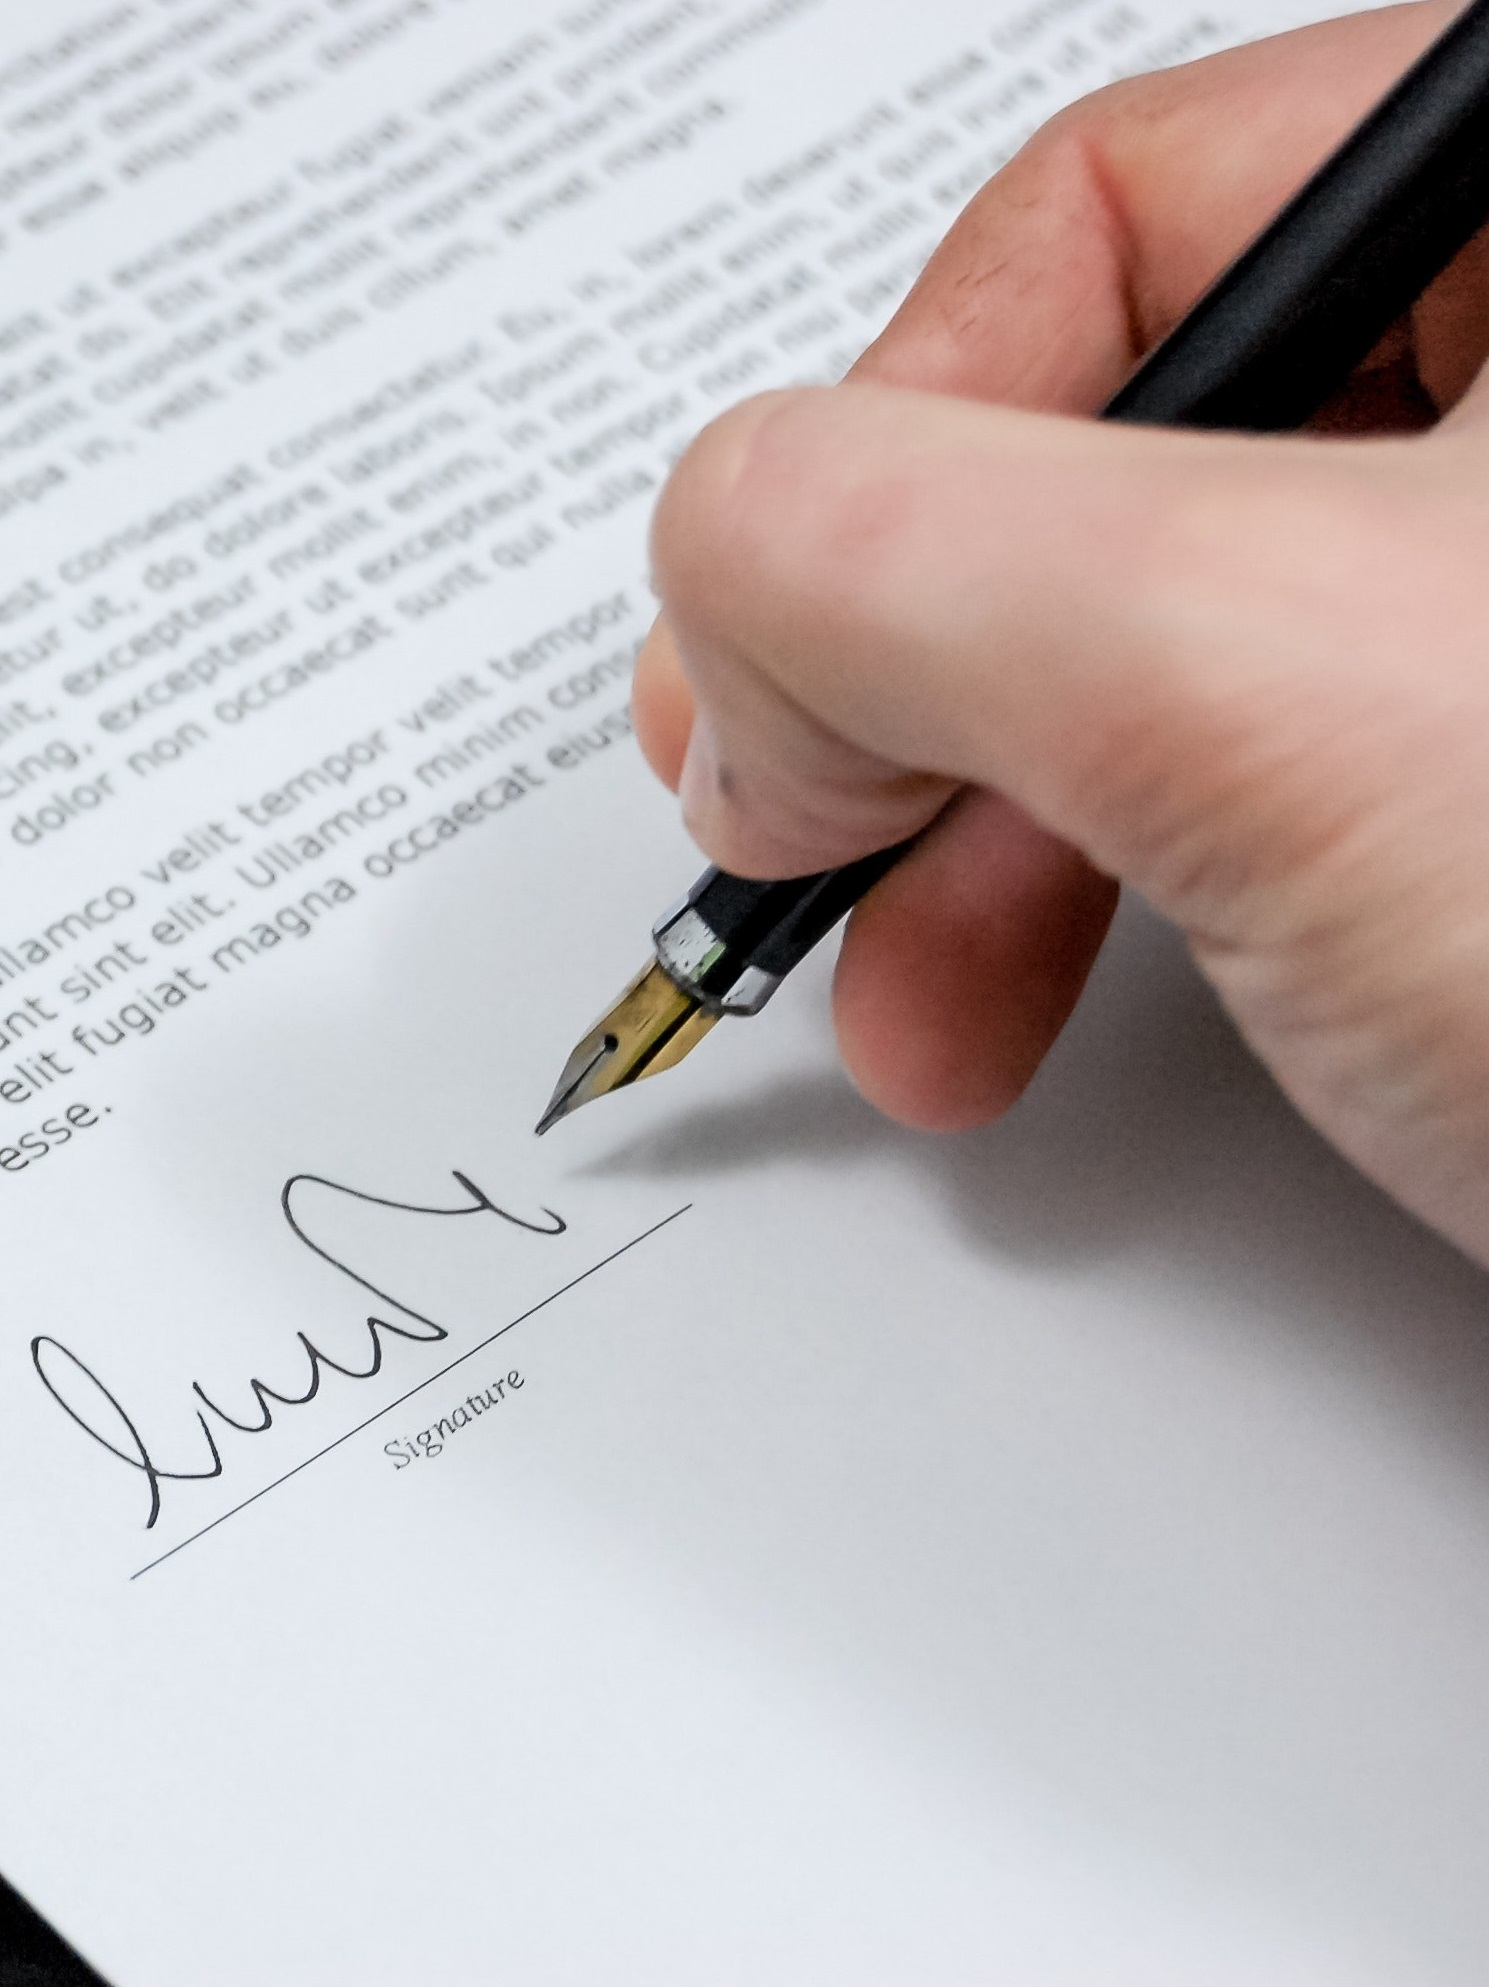 Hand putting down signature on white paper with pen